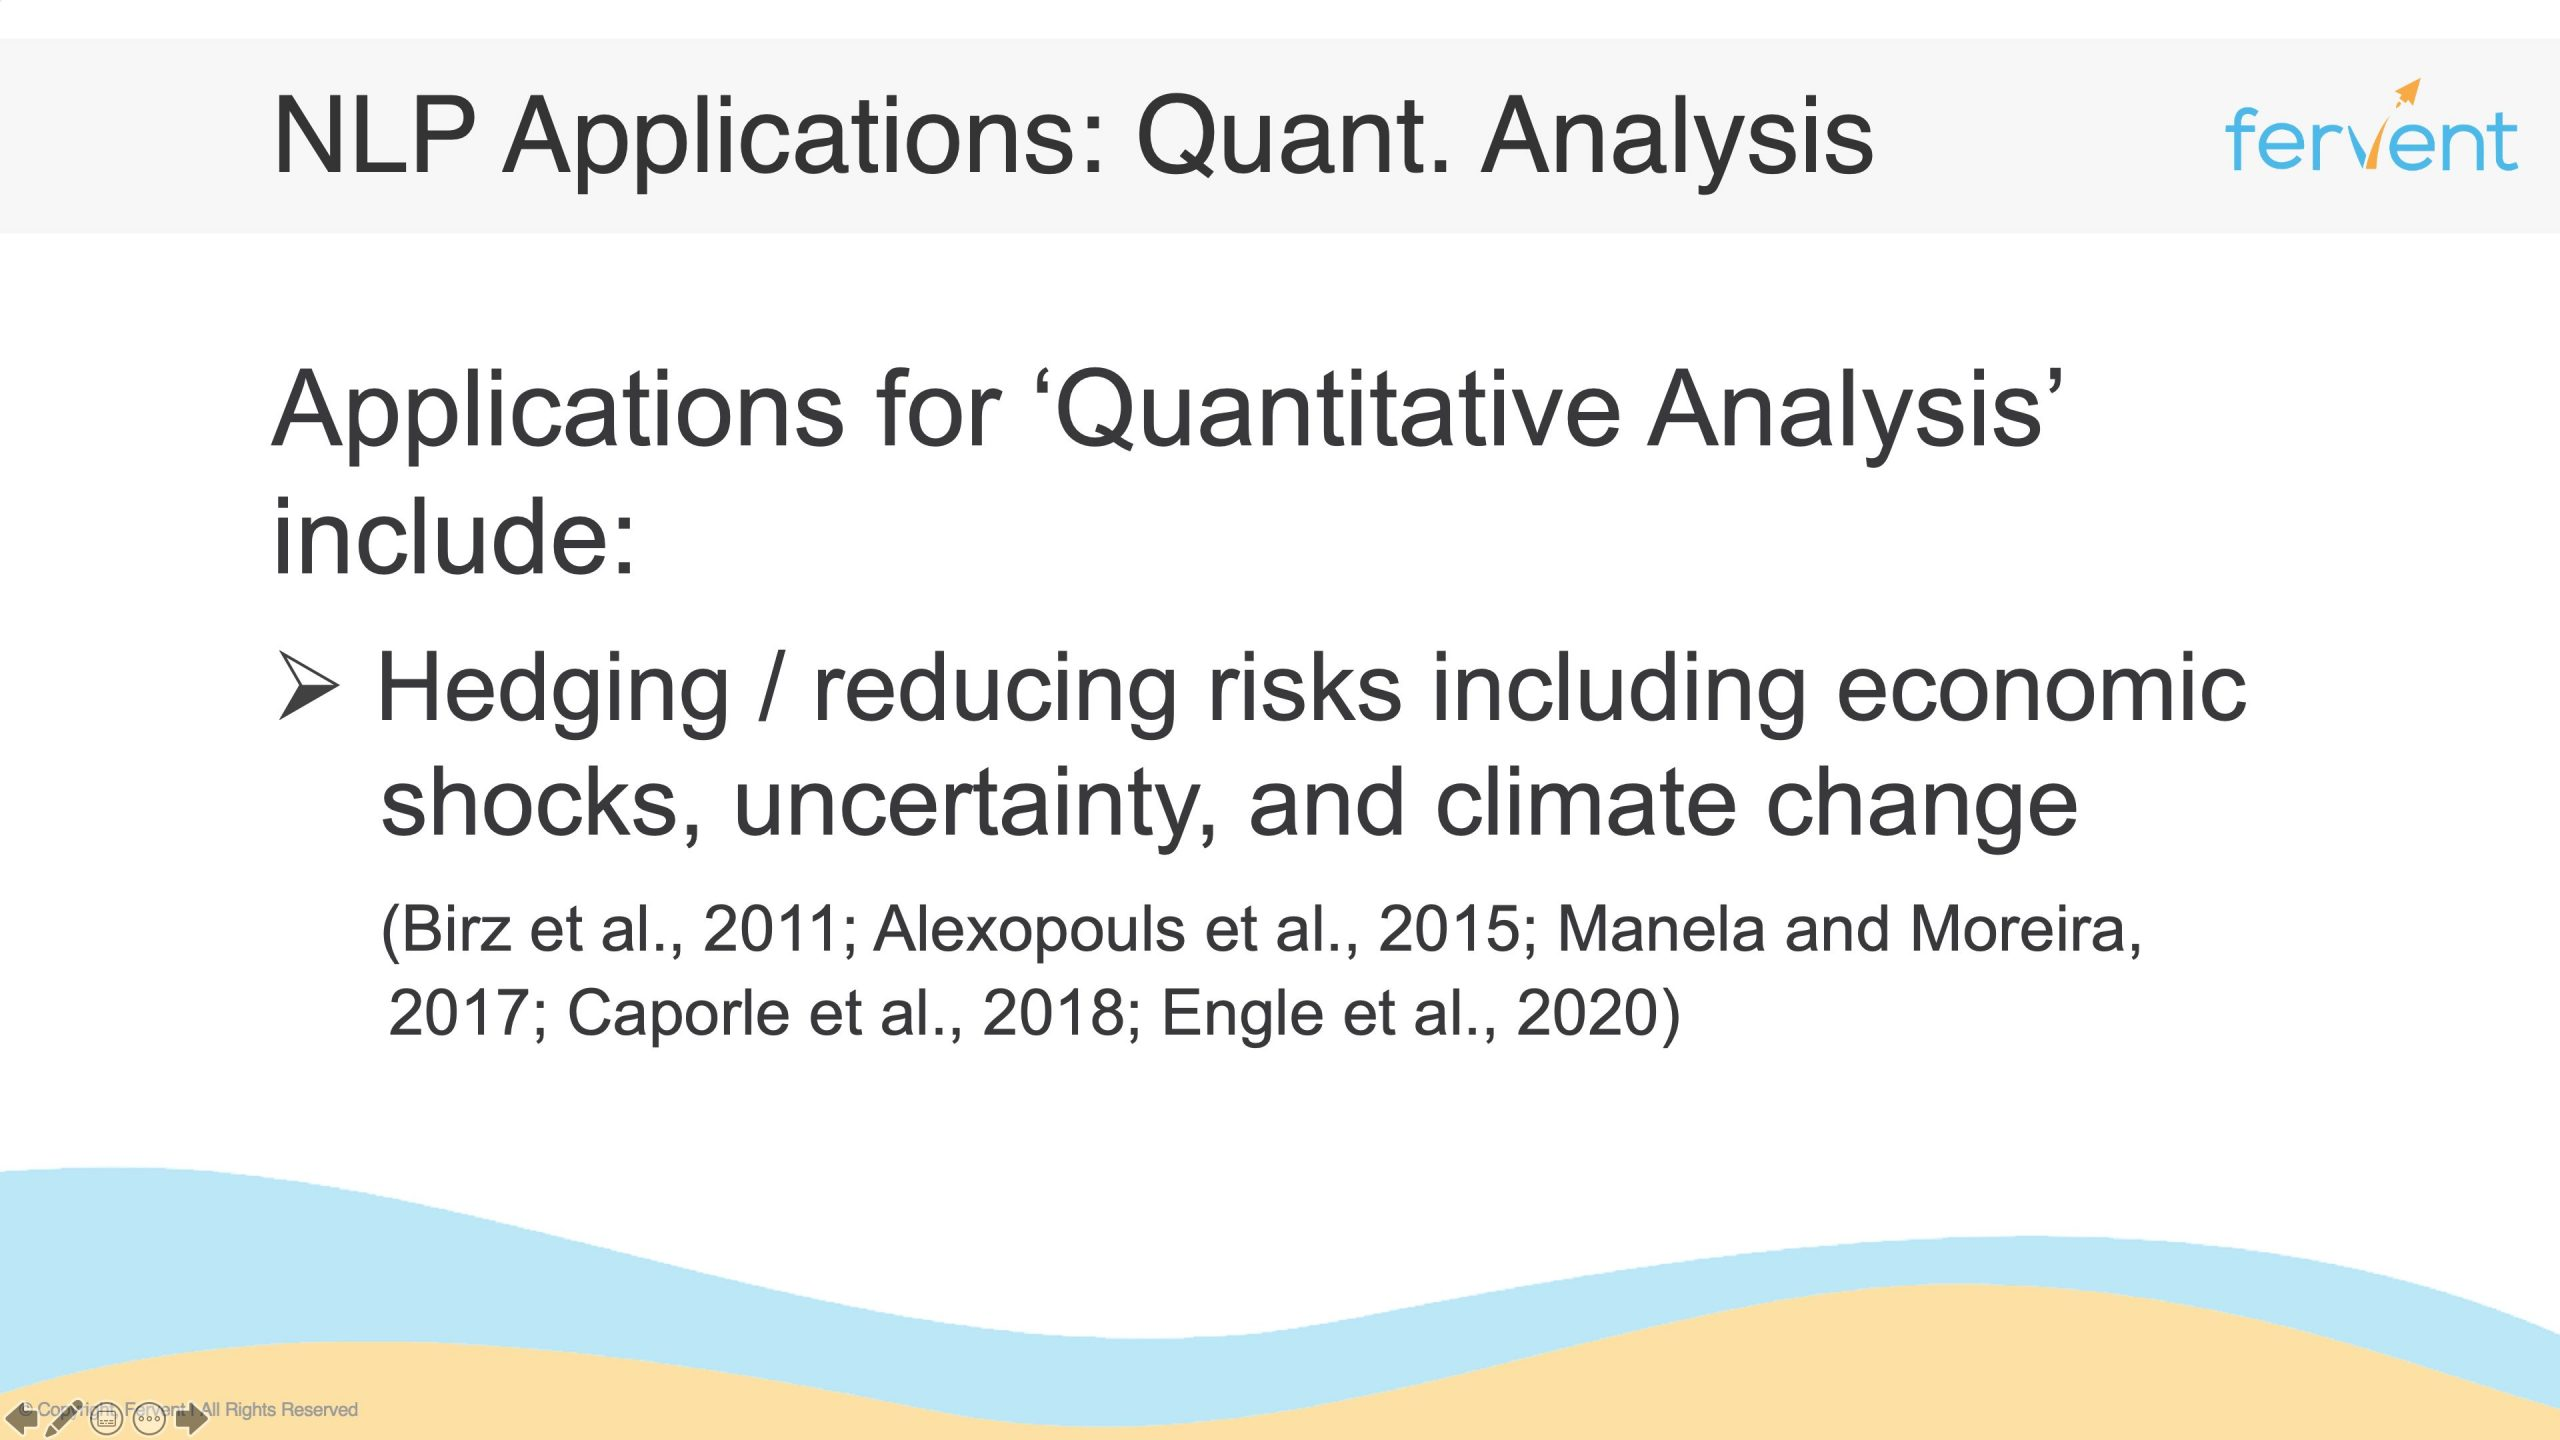 Slide showcasing NLP Applications in Finance for Quantitative Analysis